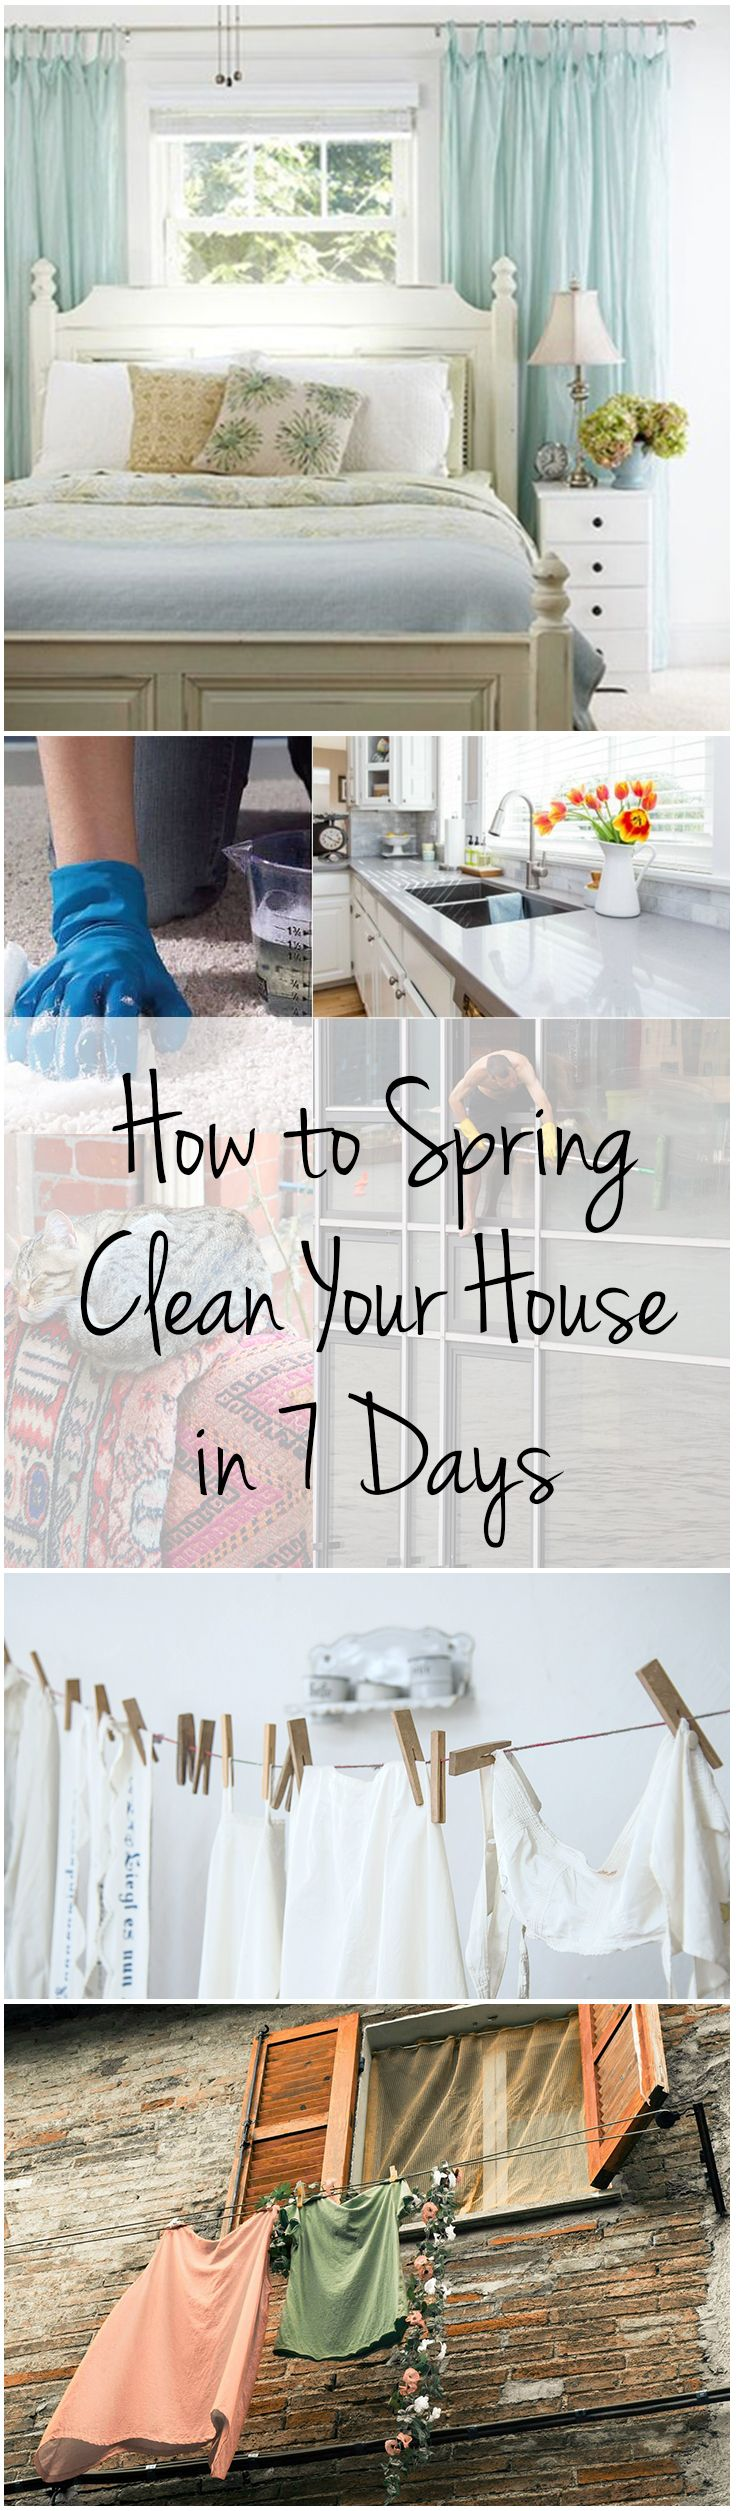 How to Spring Clean Your House in 7 Days (1)